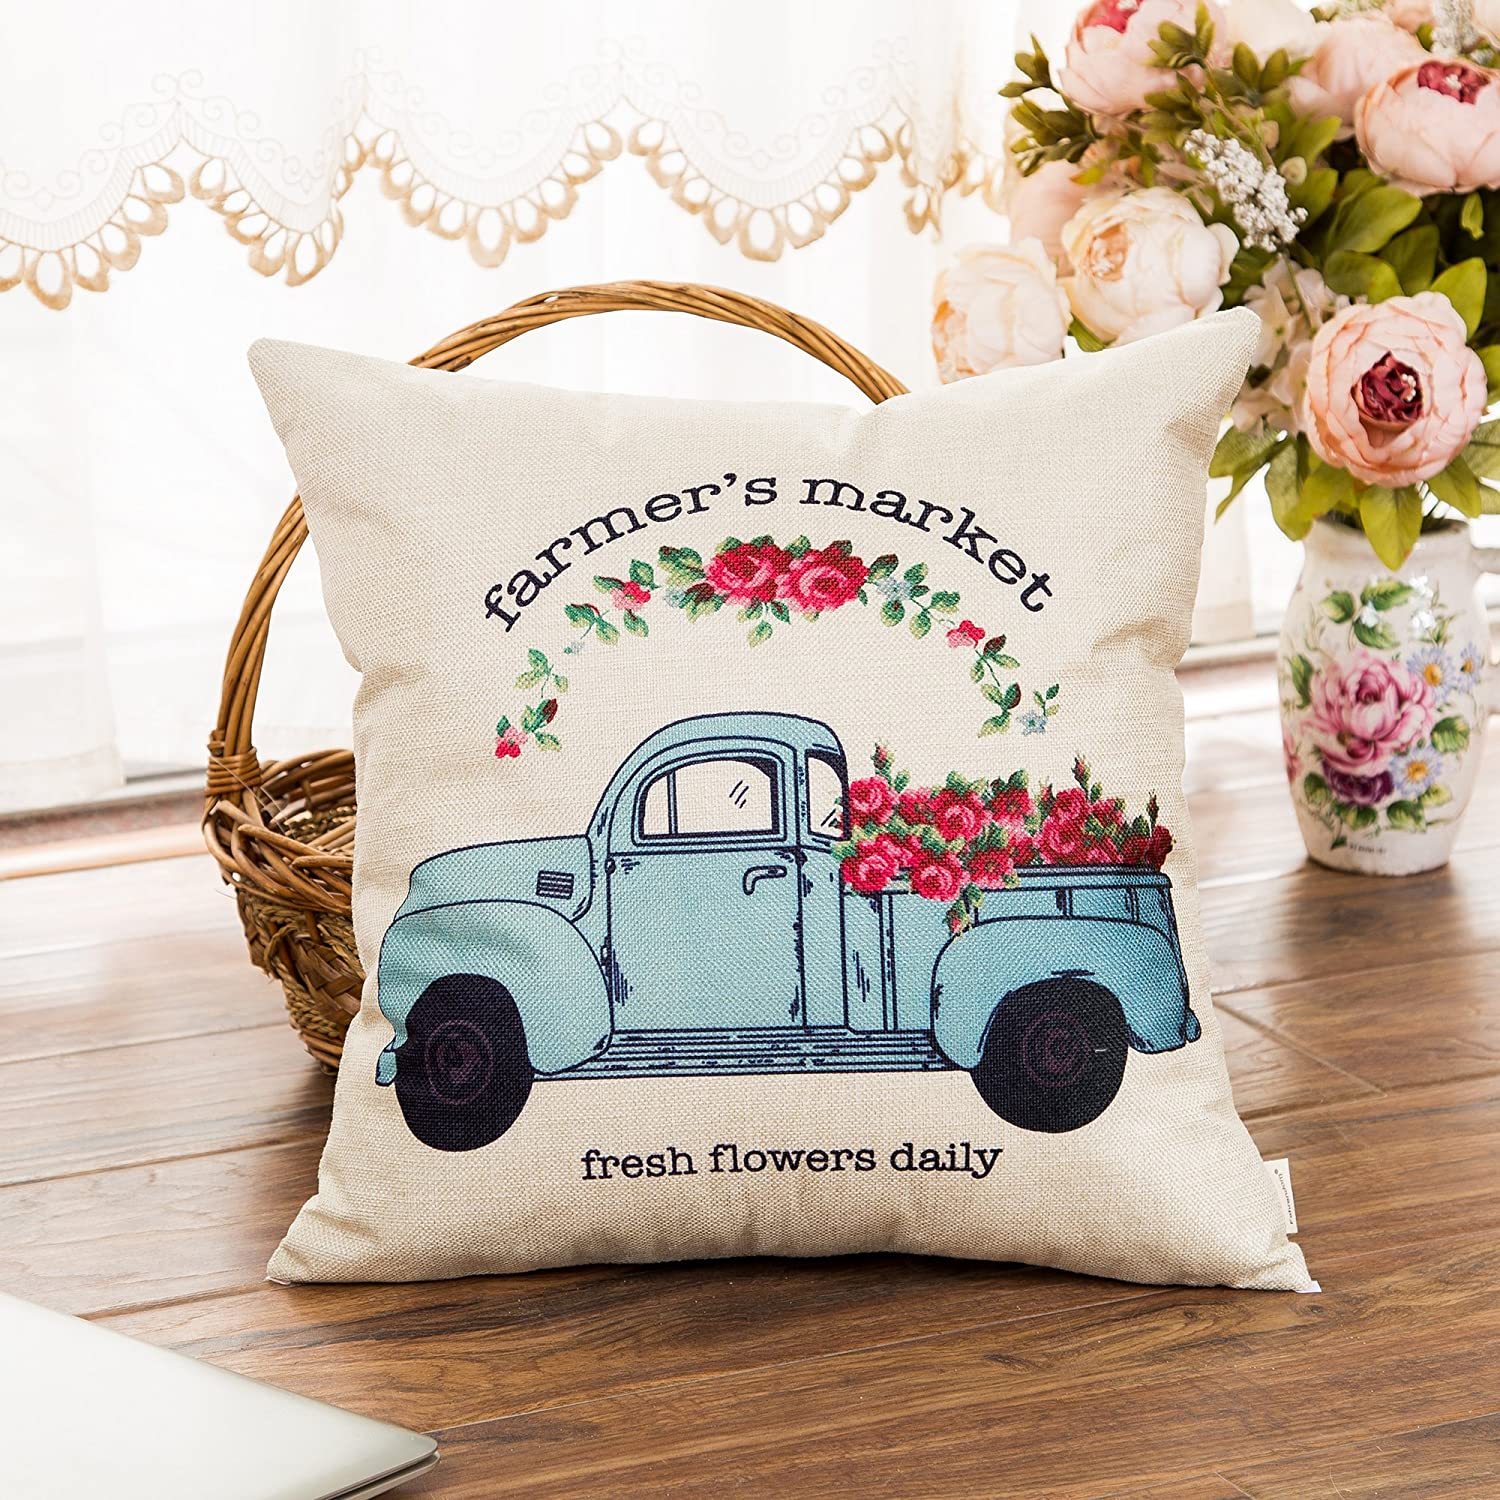 Amazon Com Fahrendom Farmer S Market Fresh Flowers Daily Vintage Truck Watercolor Floral Retro Farmhouse Quote Cotton Linen Home Decorative Throw Pillow Case Cushion Cover With Words For Sofa Couch 18 X 18 Inch